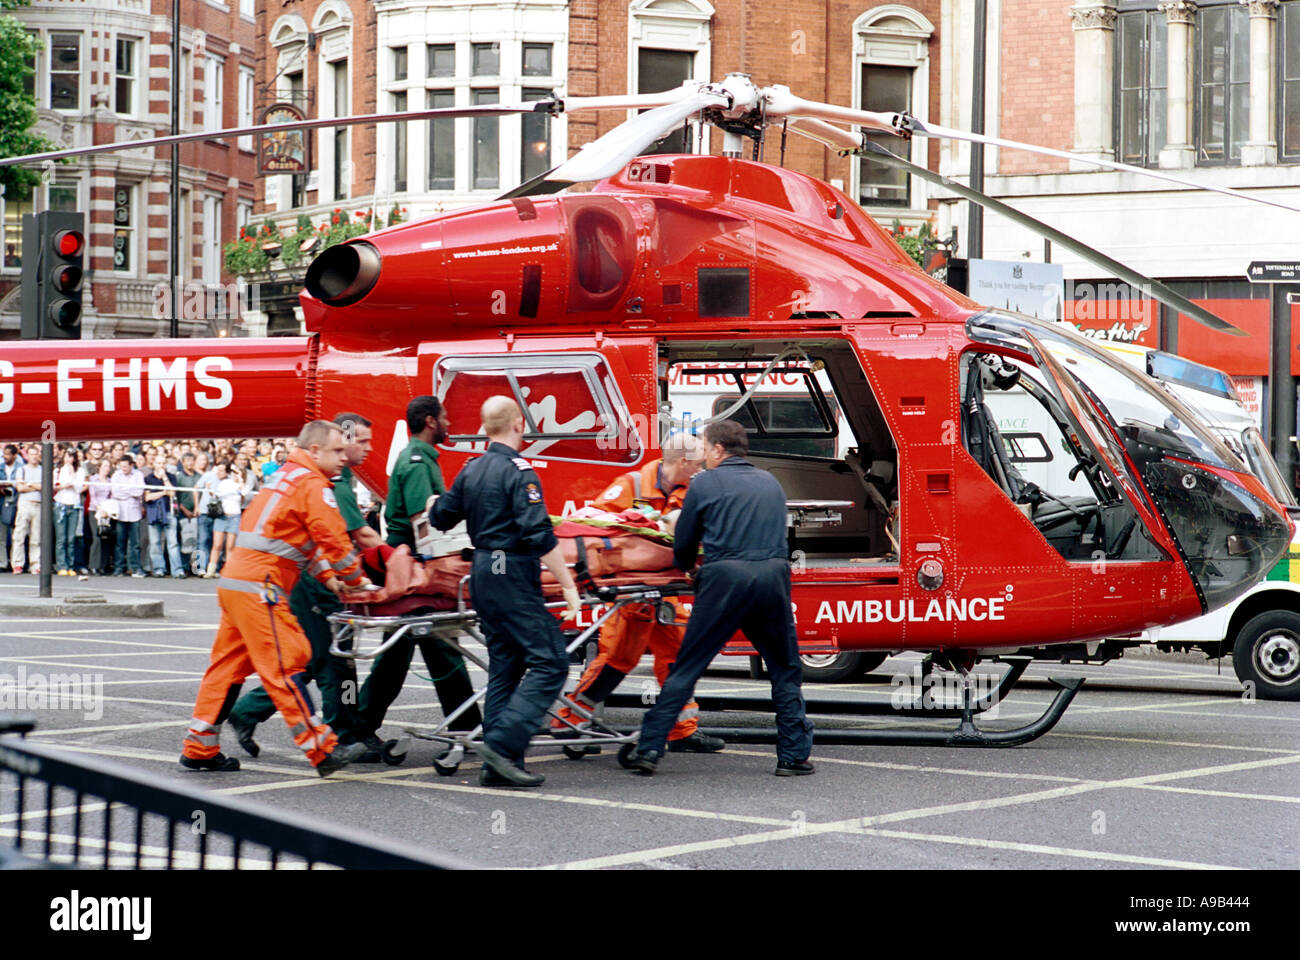 buy small helicopter with Stock Photo Virgin Air Ambulance Helicopter London England Britain Uk 635972 on 161623715157 in addition 3078261501 in addition Why Indian Special Forces Way Navy Seals Defence Minister Parrikar Clears Emergency Modernisation Plan Weapons  mandos Need More further Stunt Plane 60019 further Mestia.